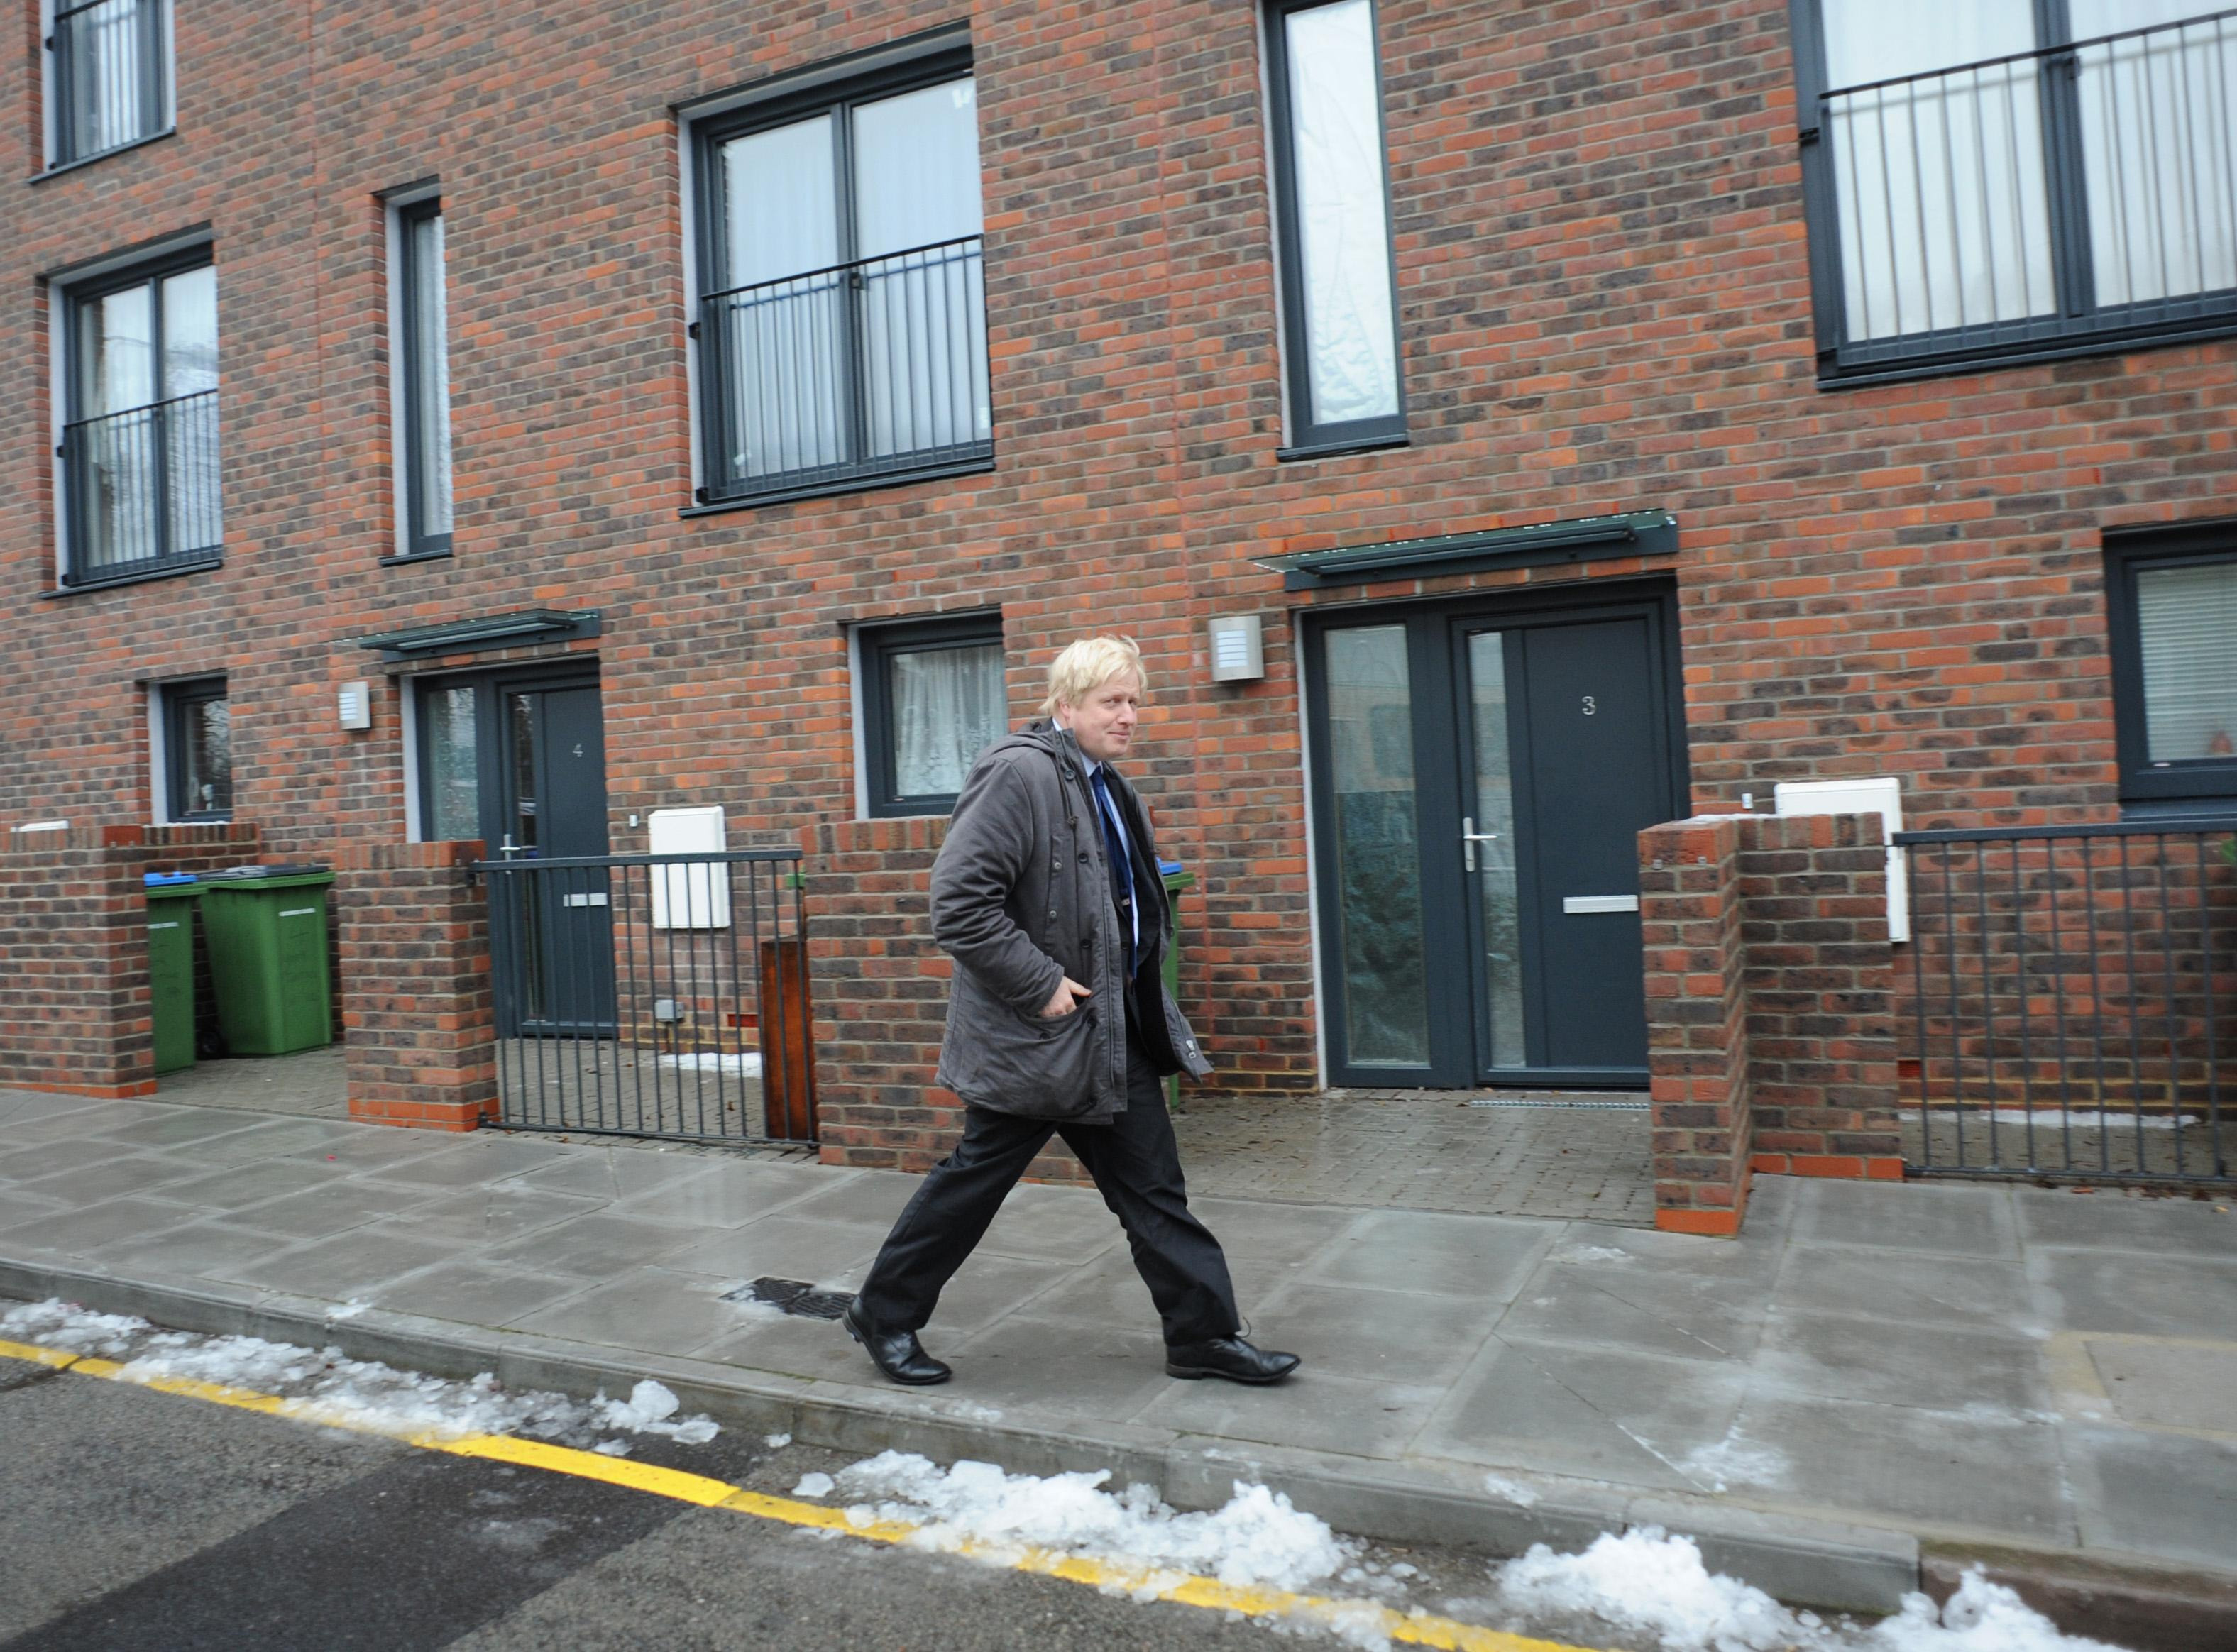 Mayor of London Boris Johnson arrives at the Gallons Close development in Charlton, south east London, where he saw some of the new affordable houses and announced that 50,000 homes would be made available to Londoners by 2012.